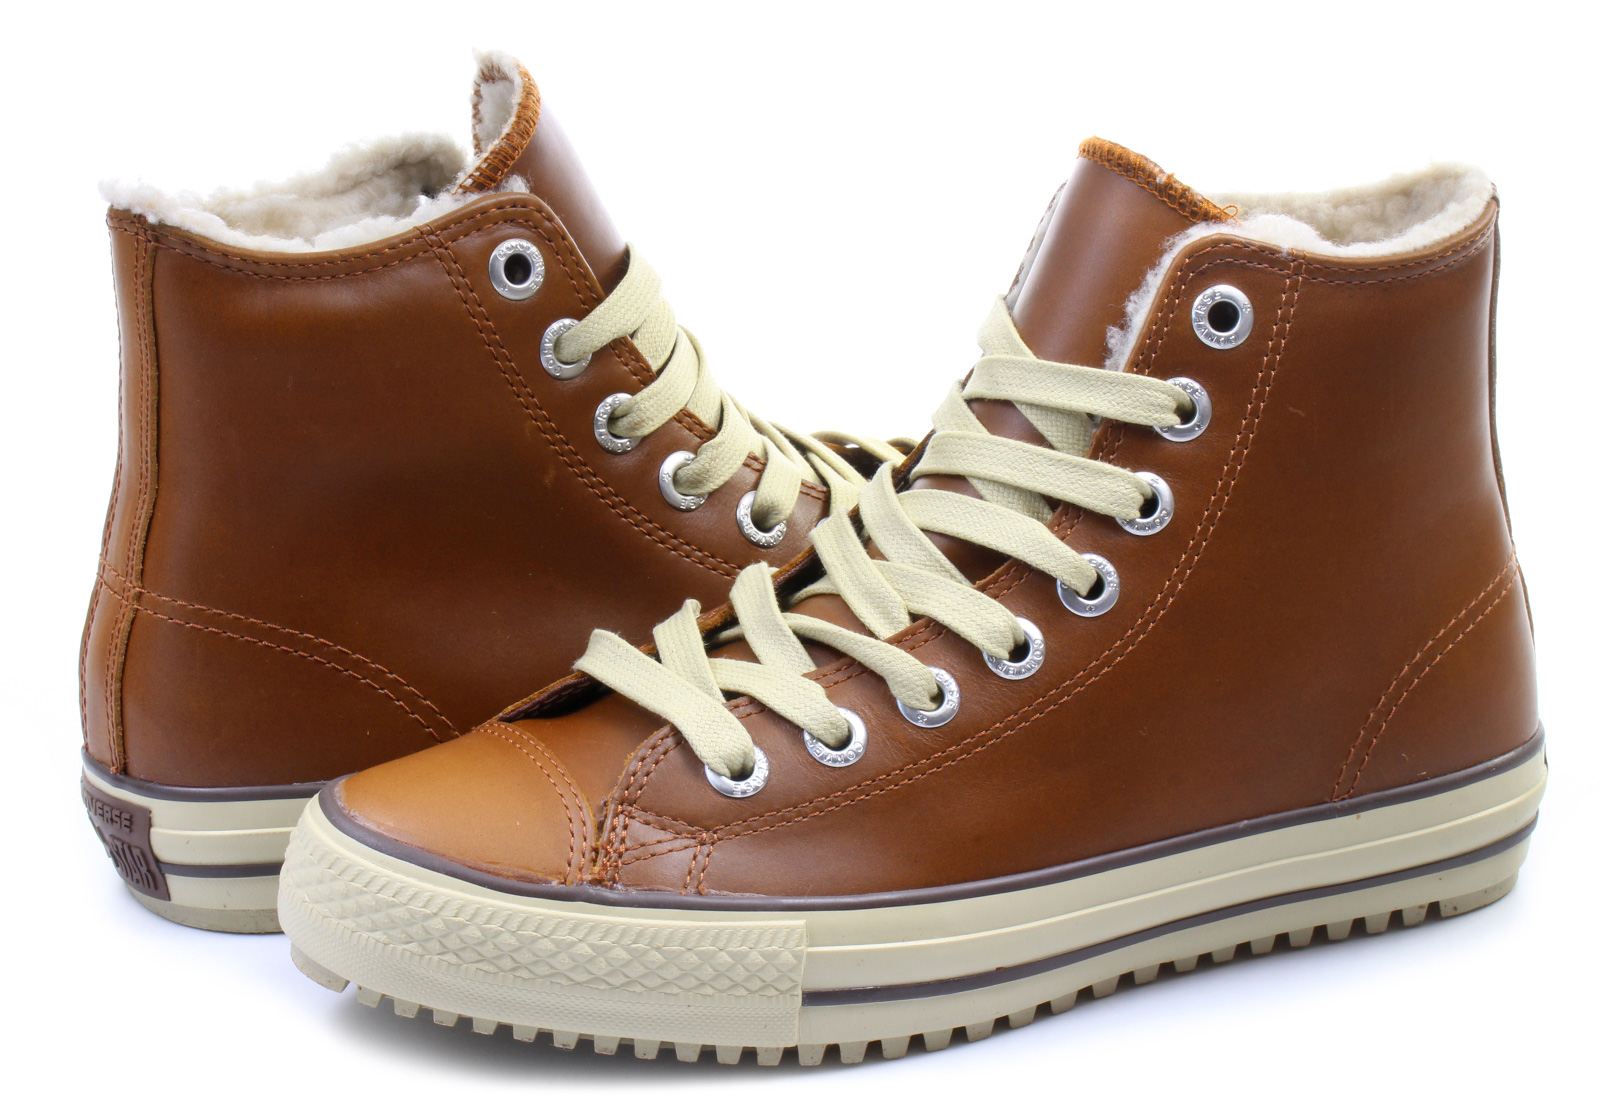 Online shopping converse shoes